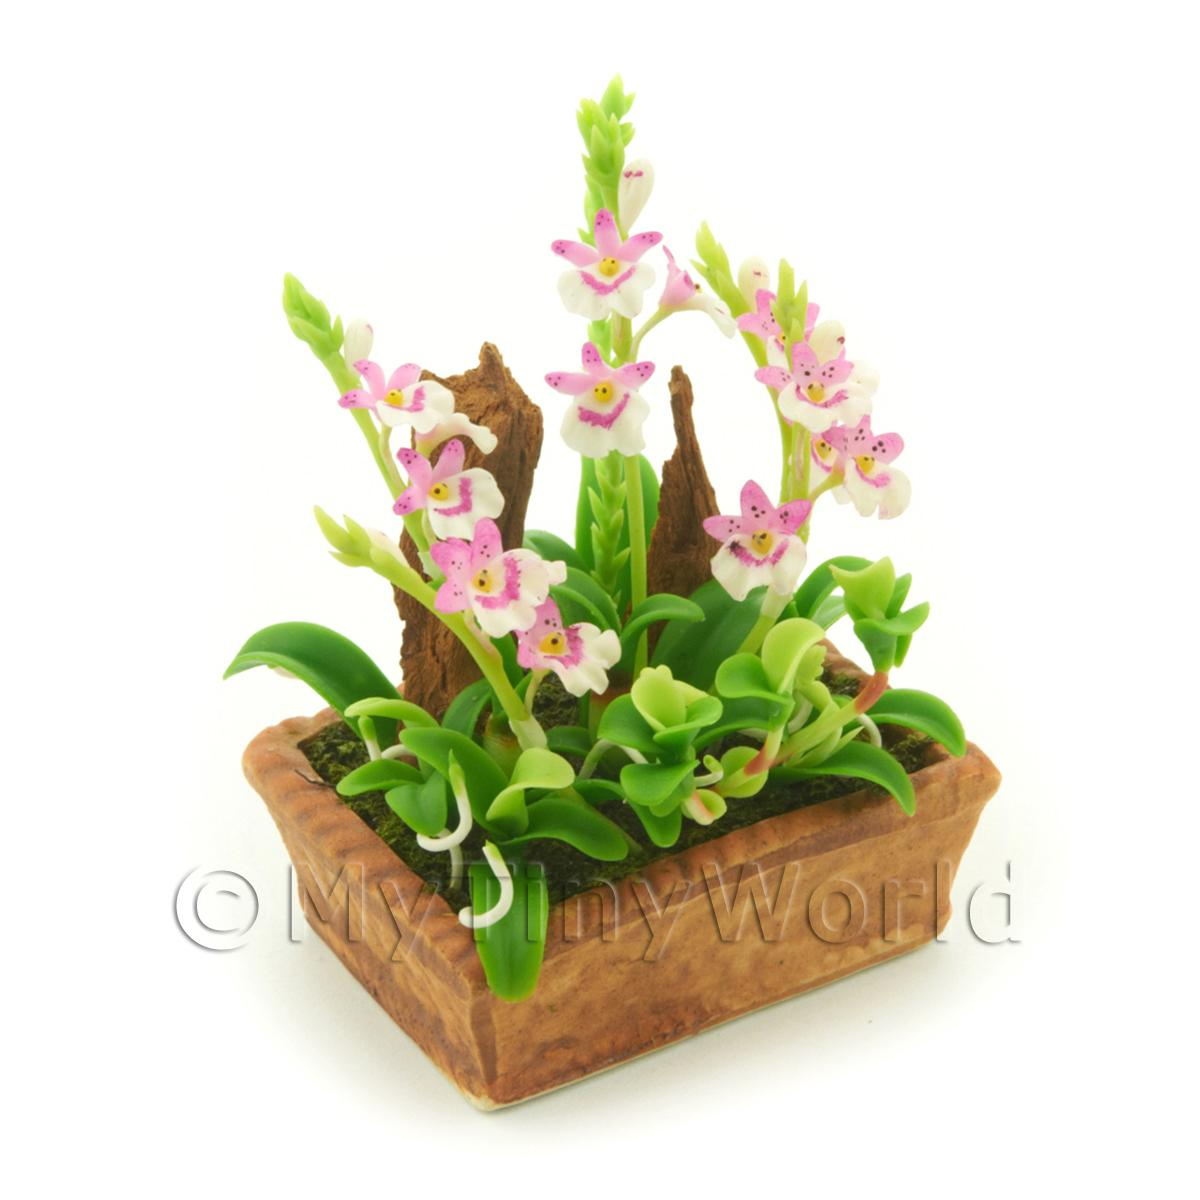 Dolls House Miniature Pink and White Cattleya Orchid Display